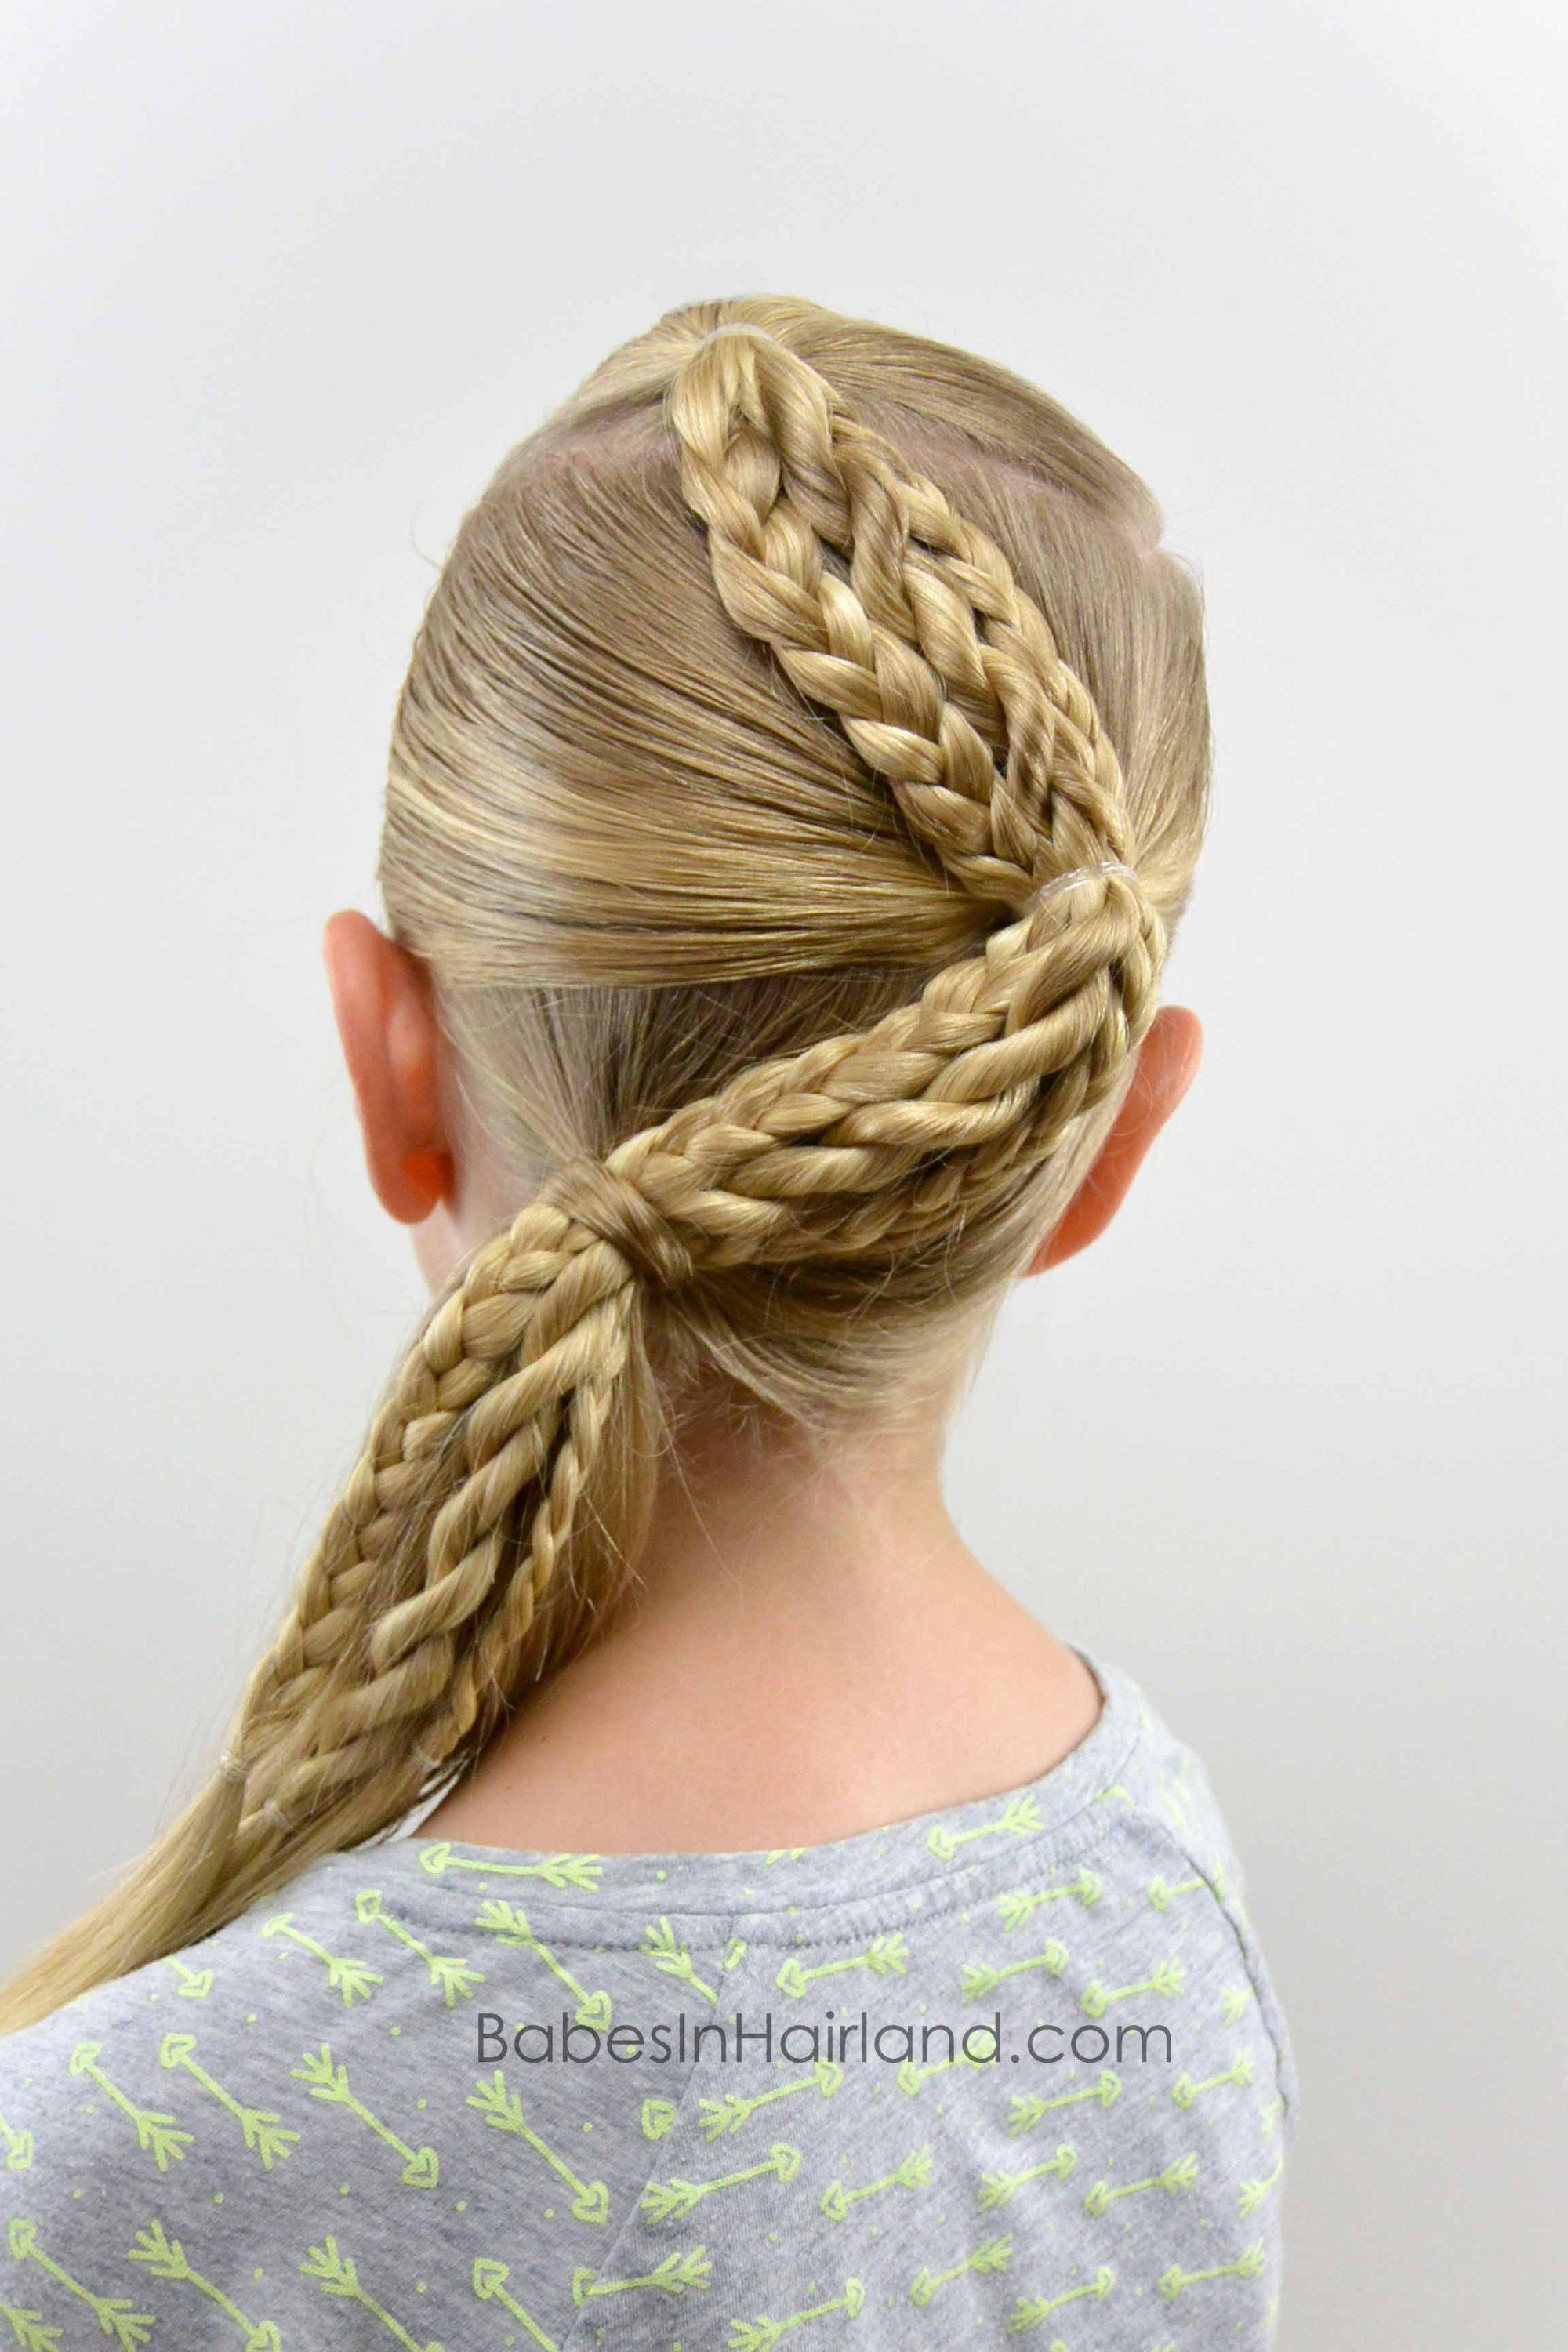 Zig zag braids hairstyles for teens pinterest braids hair and